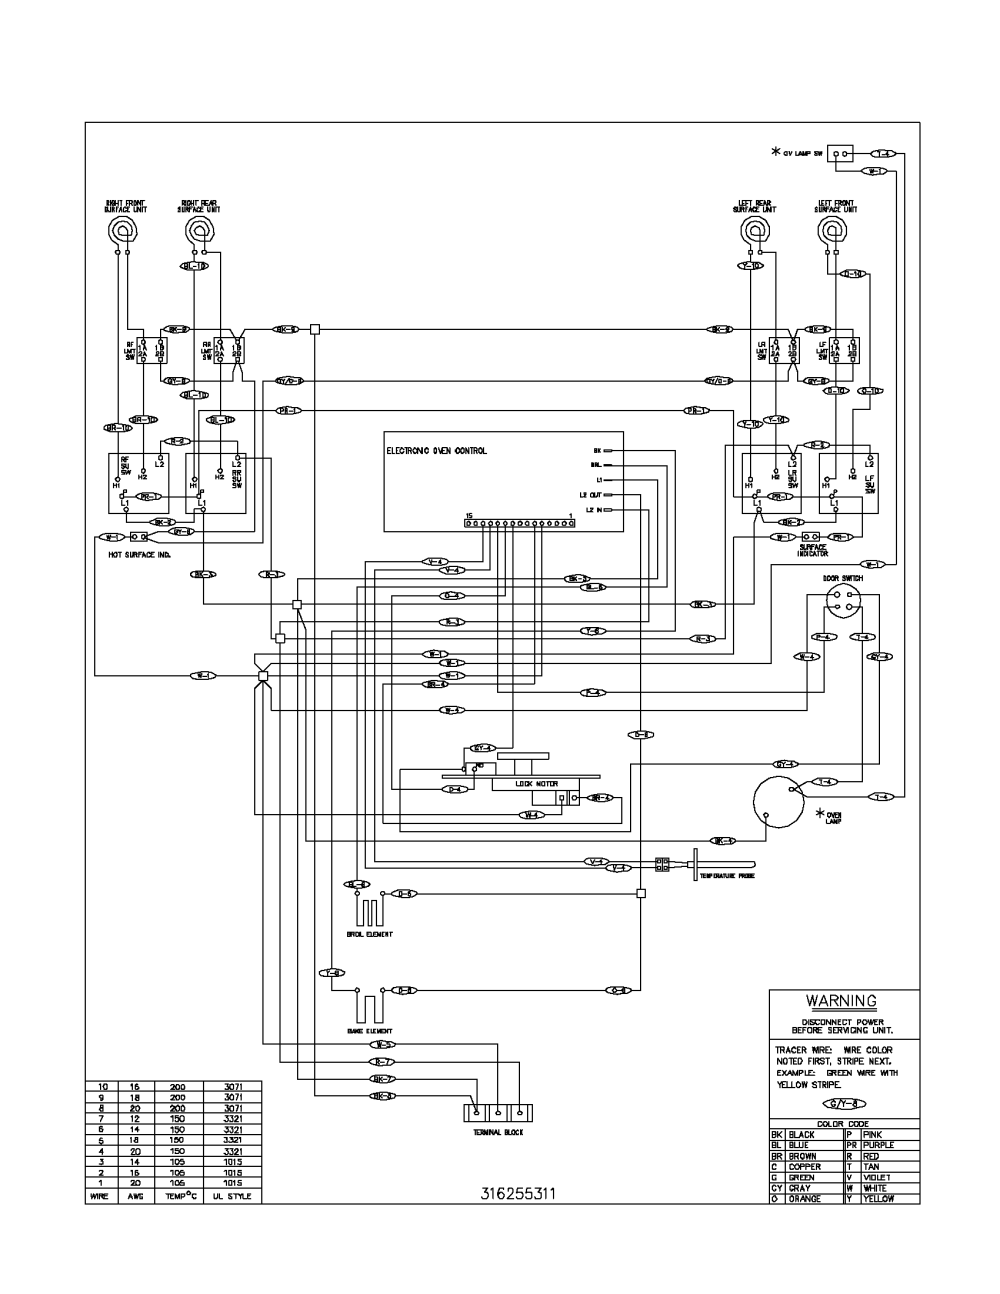 medium resolution of viking wiring diagram wiring diagrams cargo craft wiring diagram viking range wiring diagram simple wiring diagram